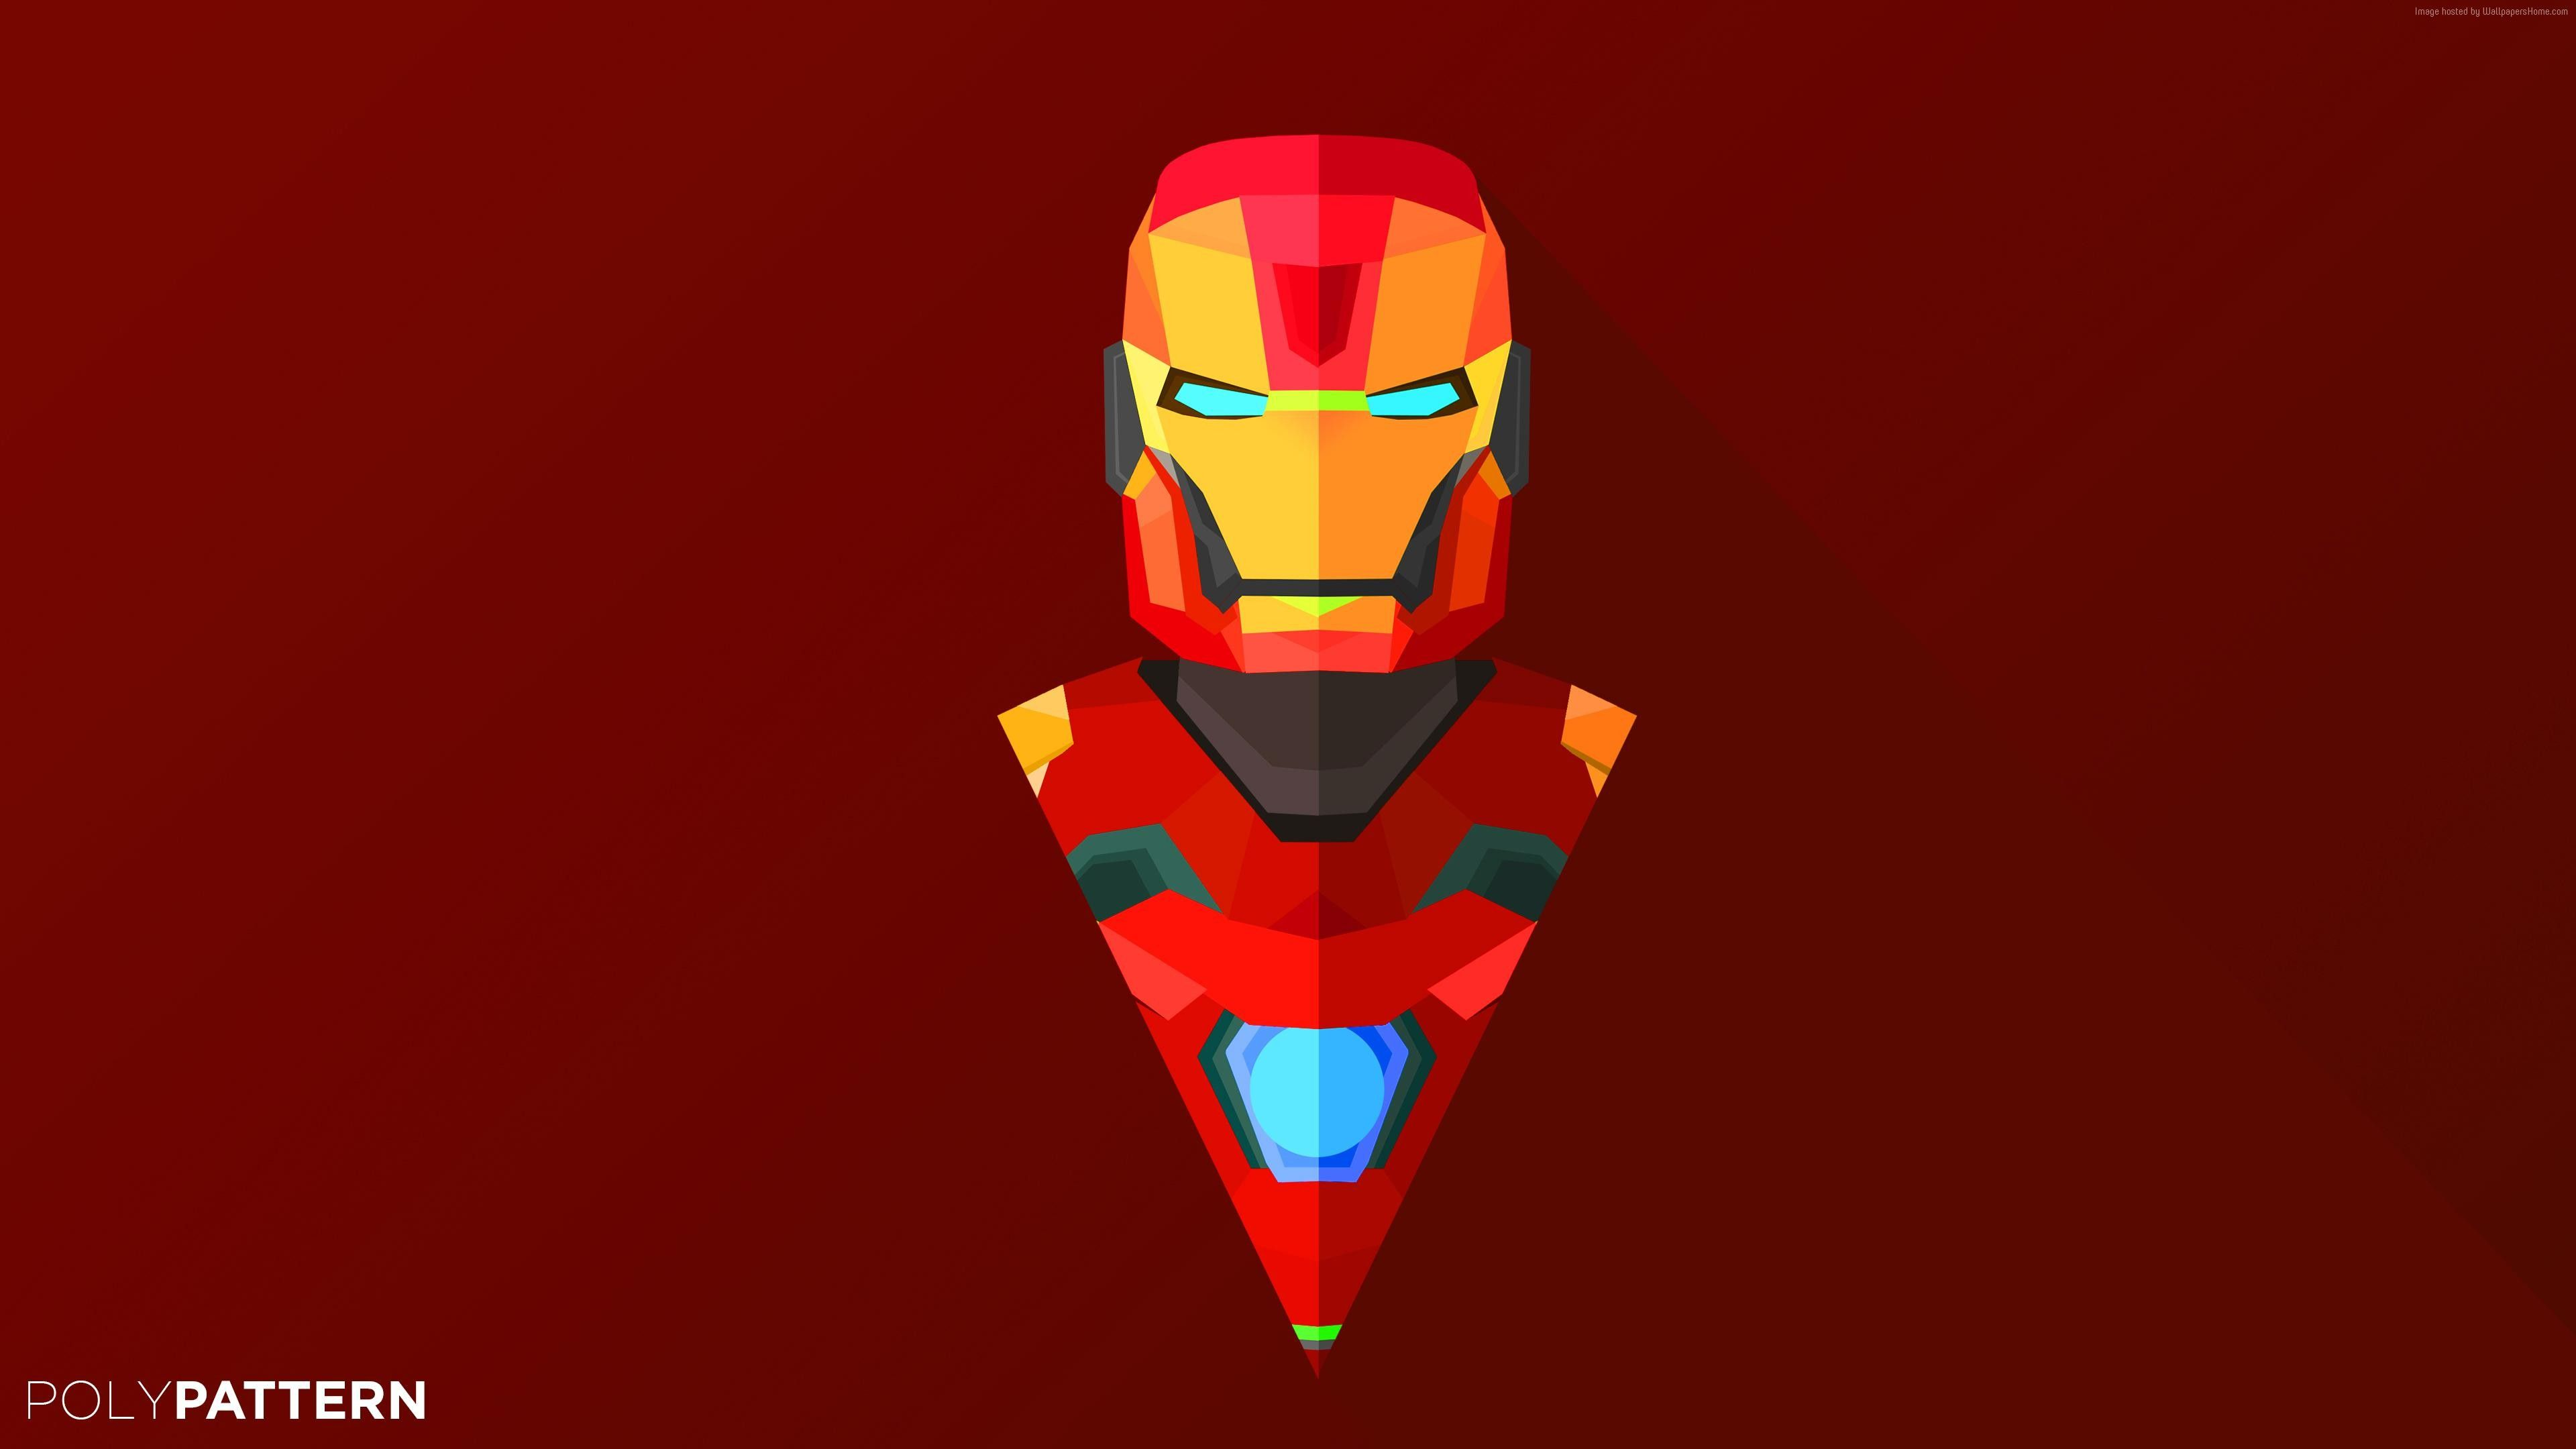 Wallpapers Iron Man, abstract, low poly, minimalism, 4k, 5k, iphone